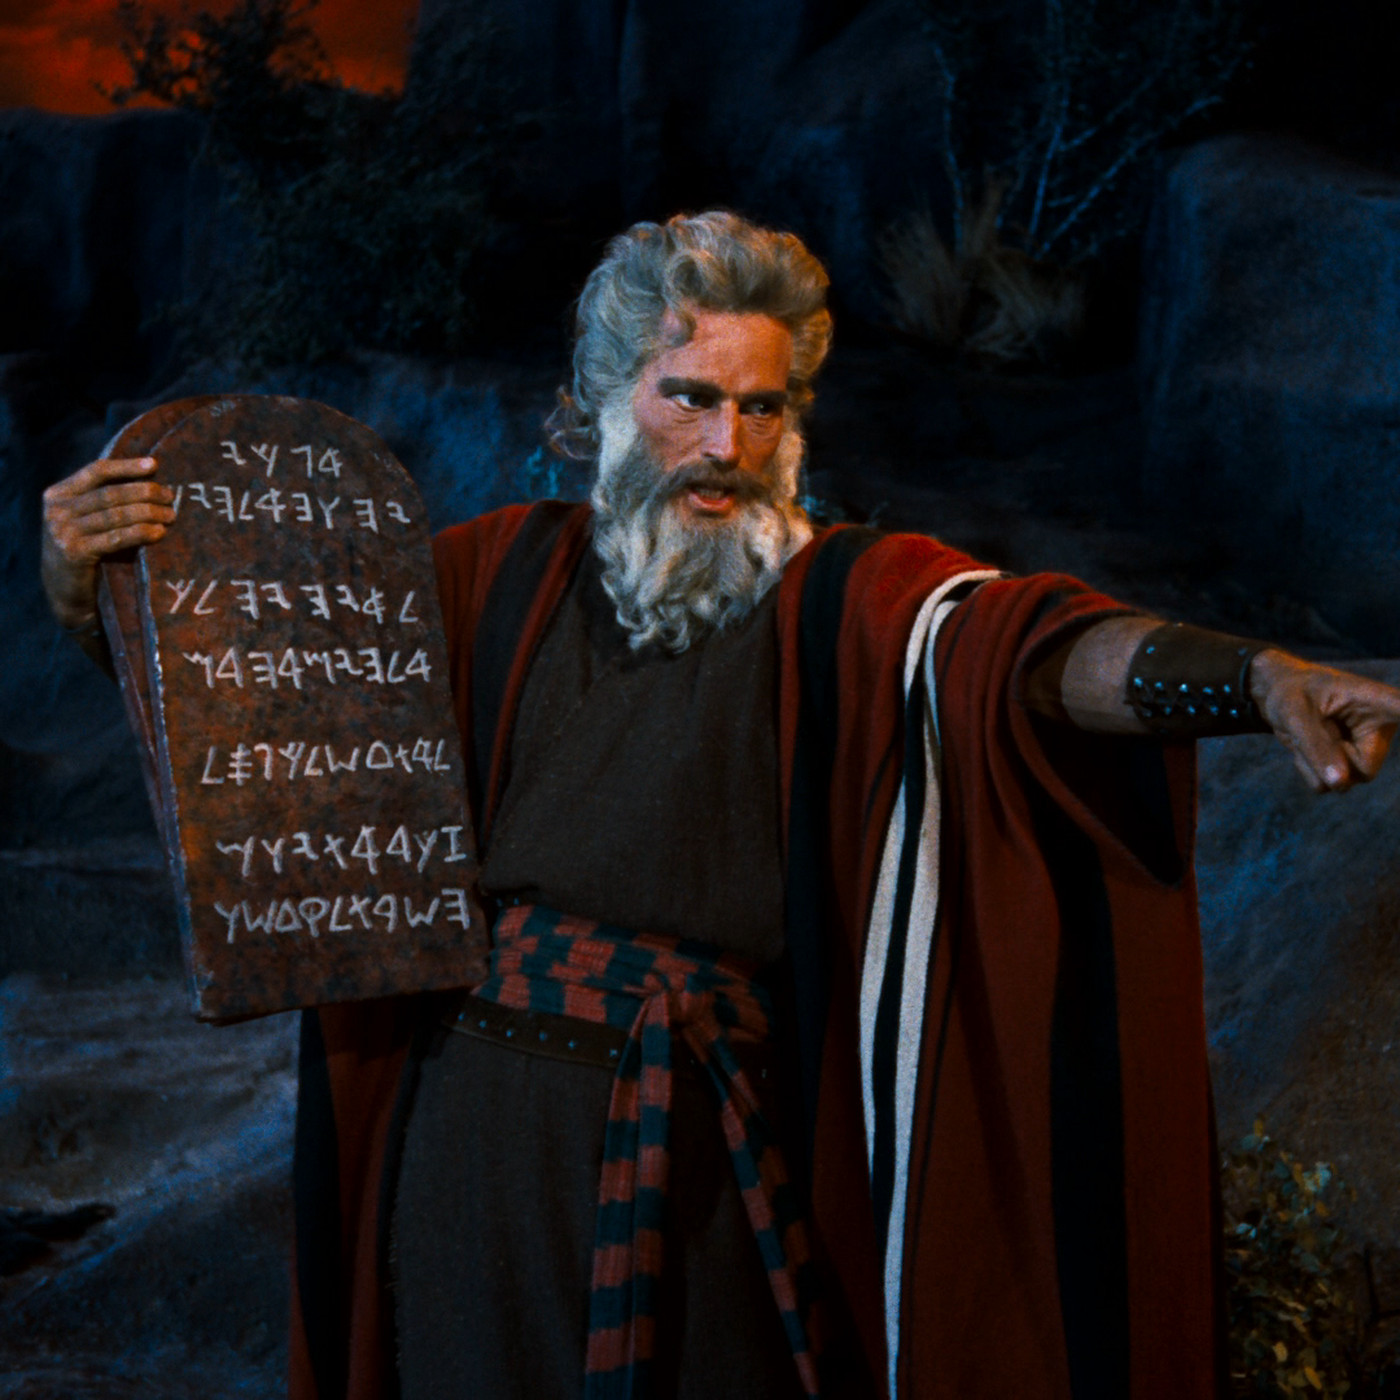 The Ten Commandments has been a springtime TV staple since 1968, with good  reason - Vox